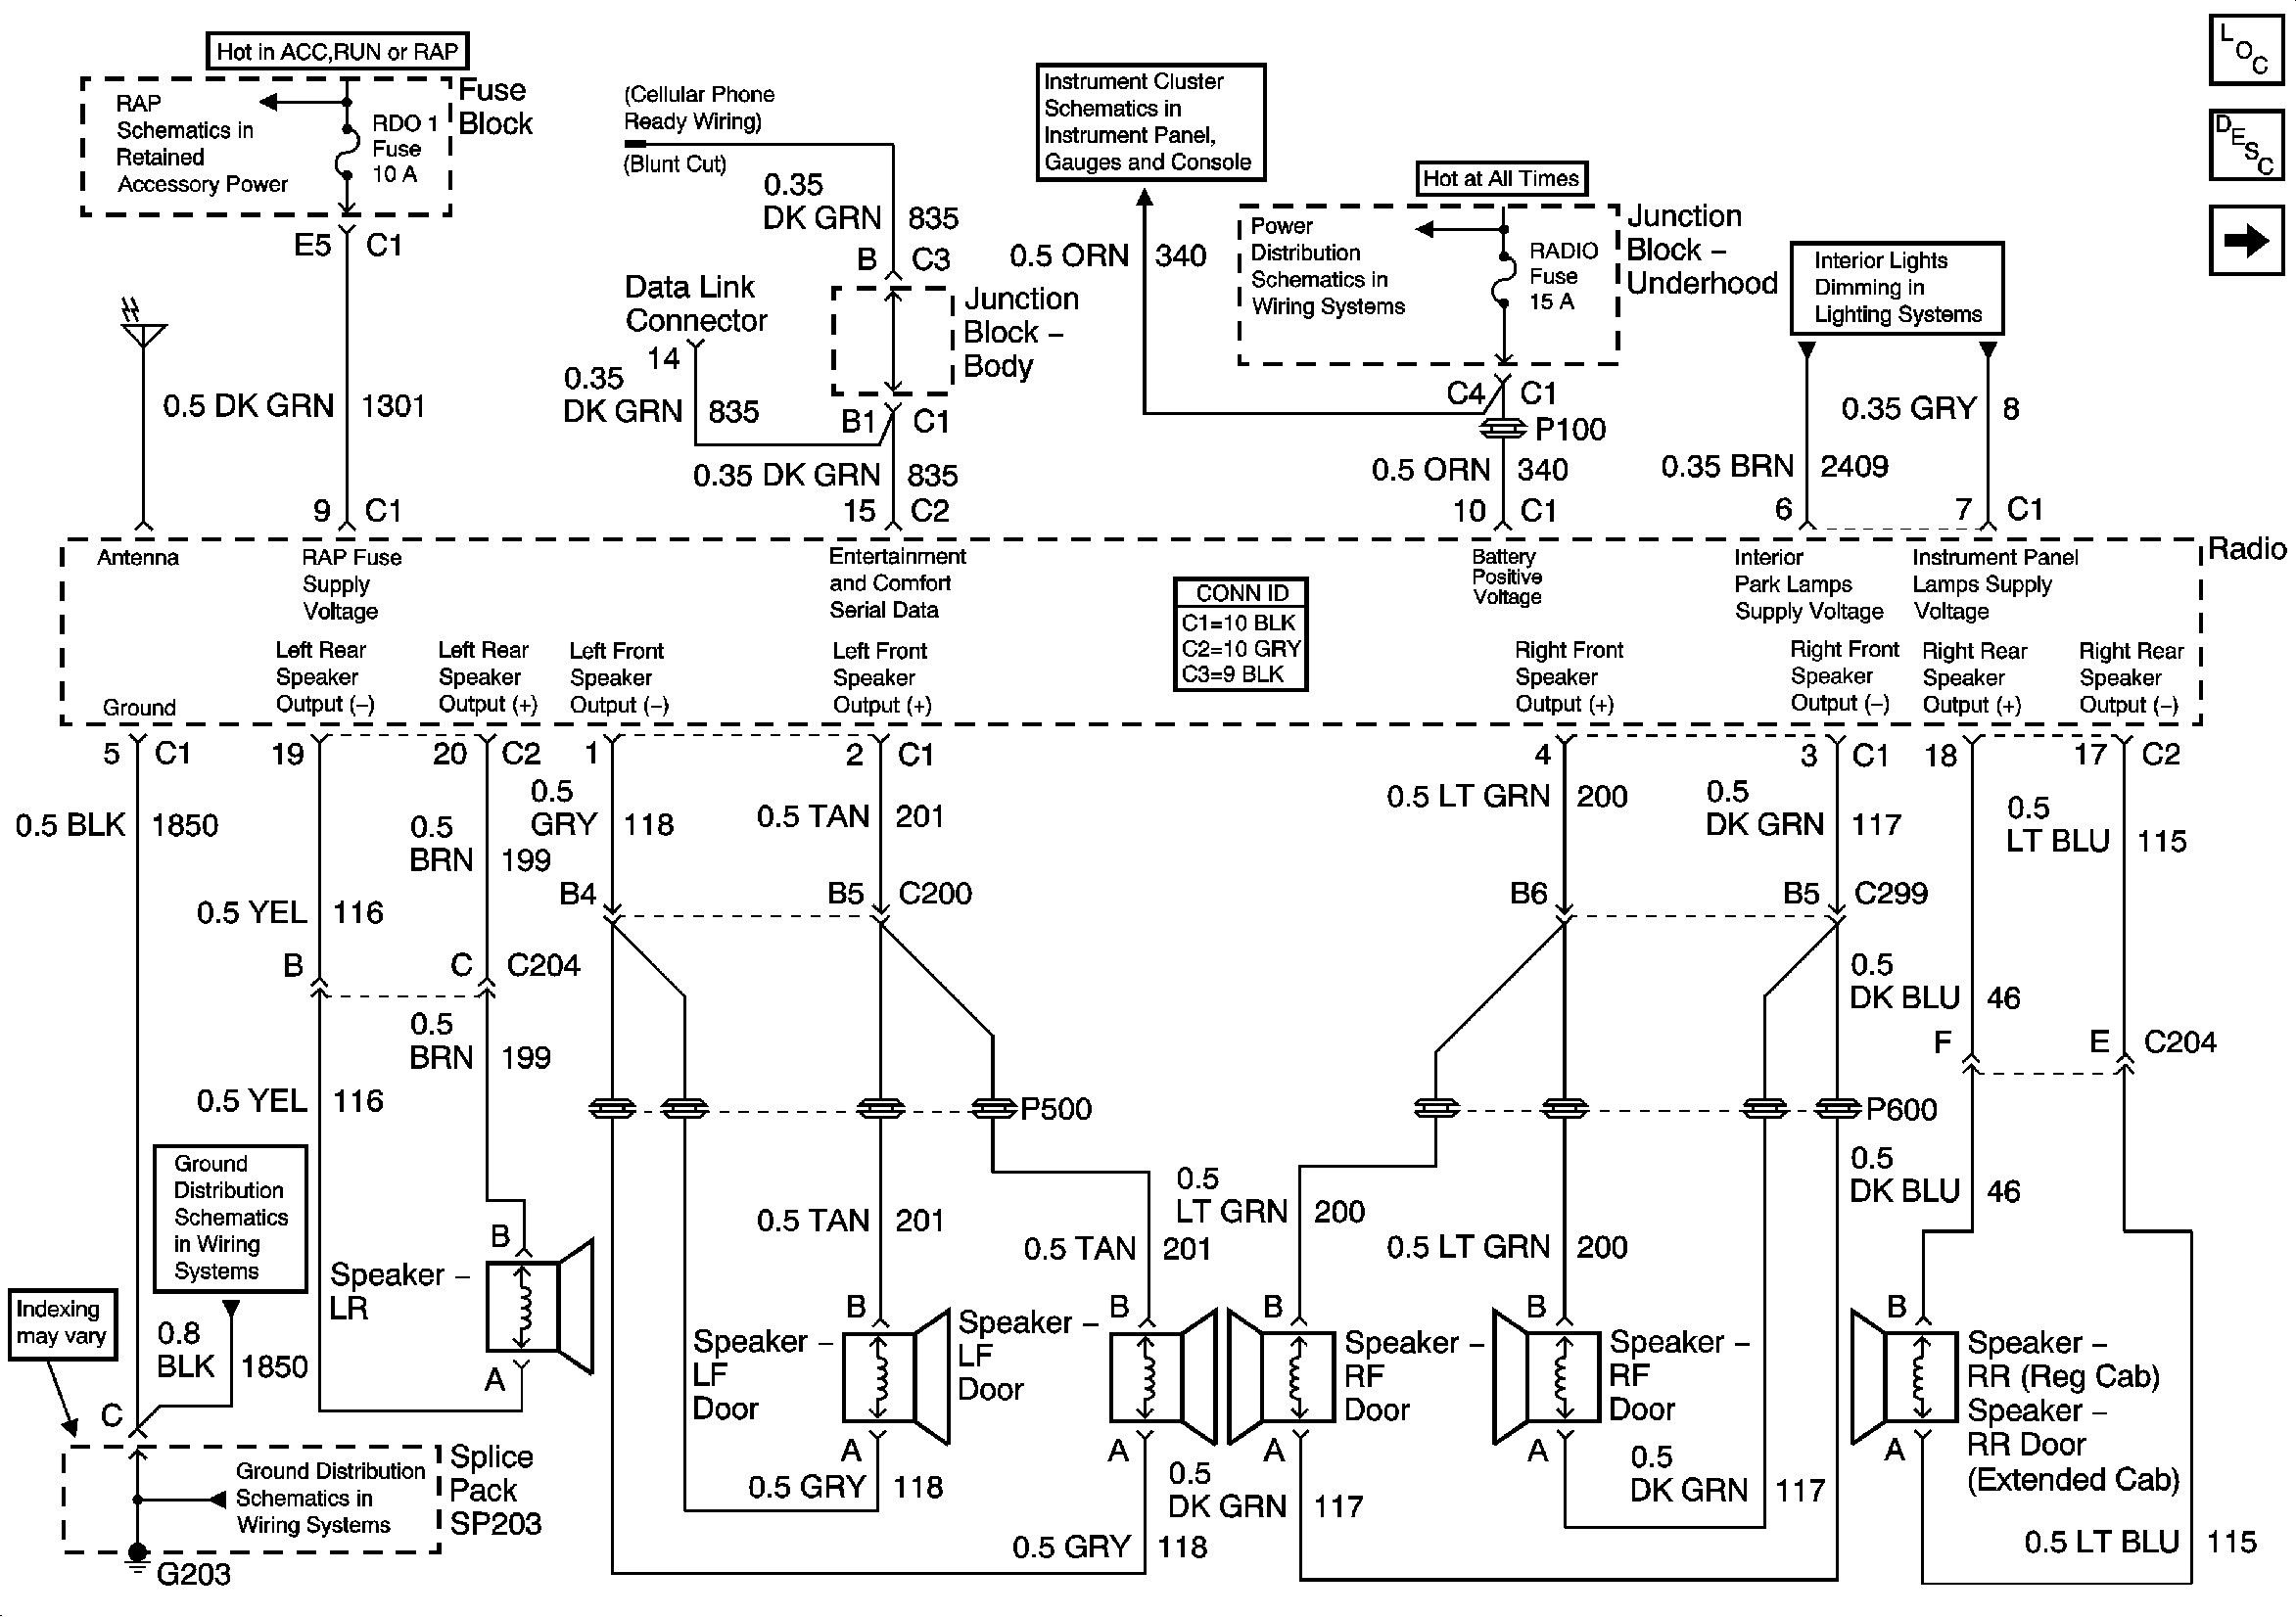 2015 Chevy Impala Wiring Diagram - Wiring Diagram Replace trace-symbol -  trace-symbol.miramontiseo.it | 2015 Chevy Impala Wiring Diagram |  | trace-symbol.miramontiseo.it